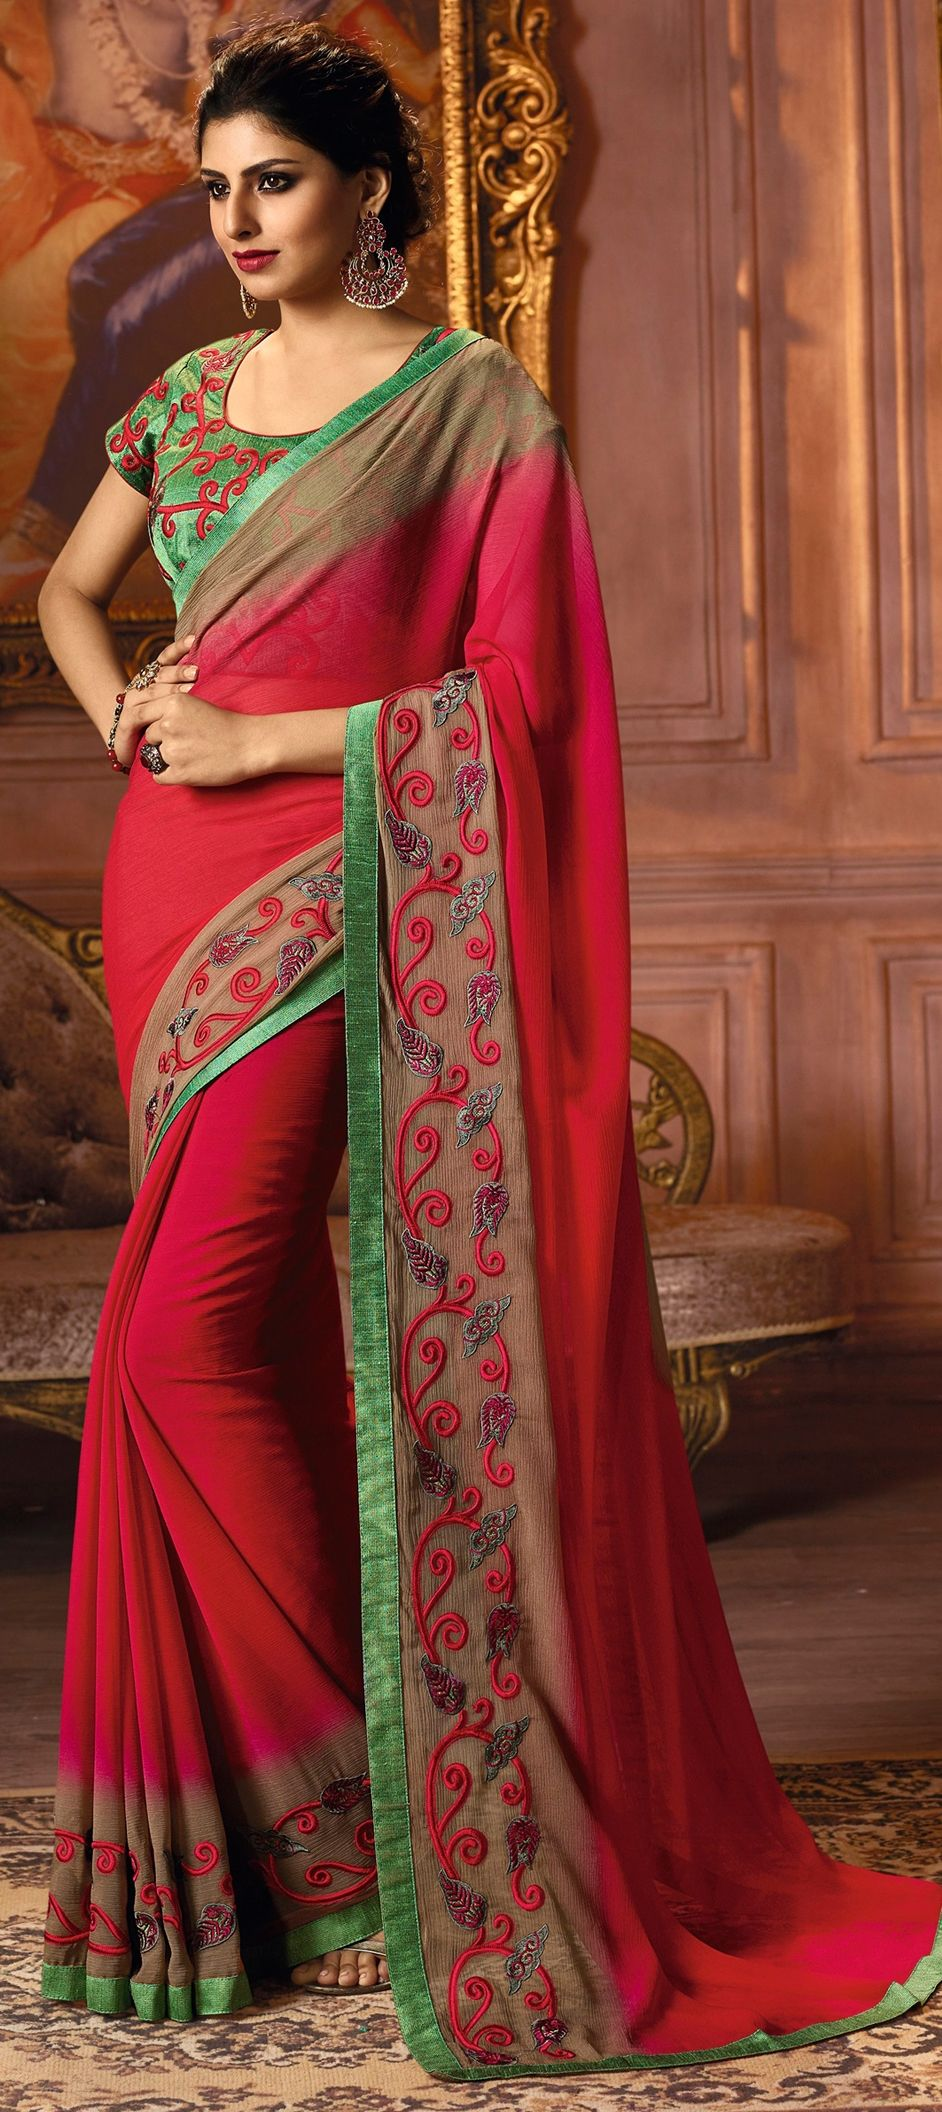 cd38cdbbd579ab 1505710: Party Wear Red and Maroon color Chiffon fabric Sarees